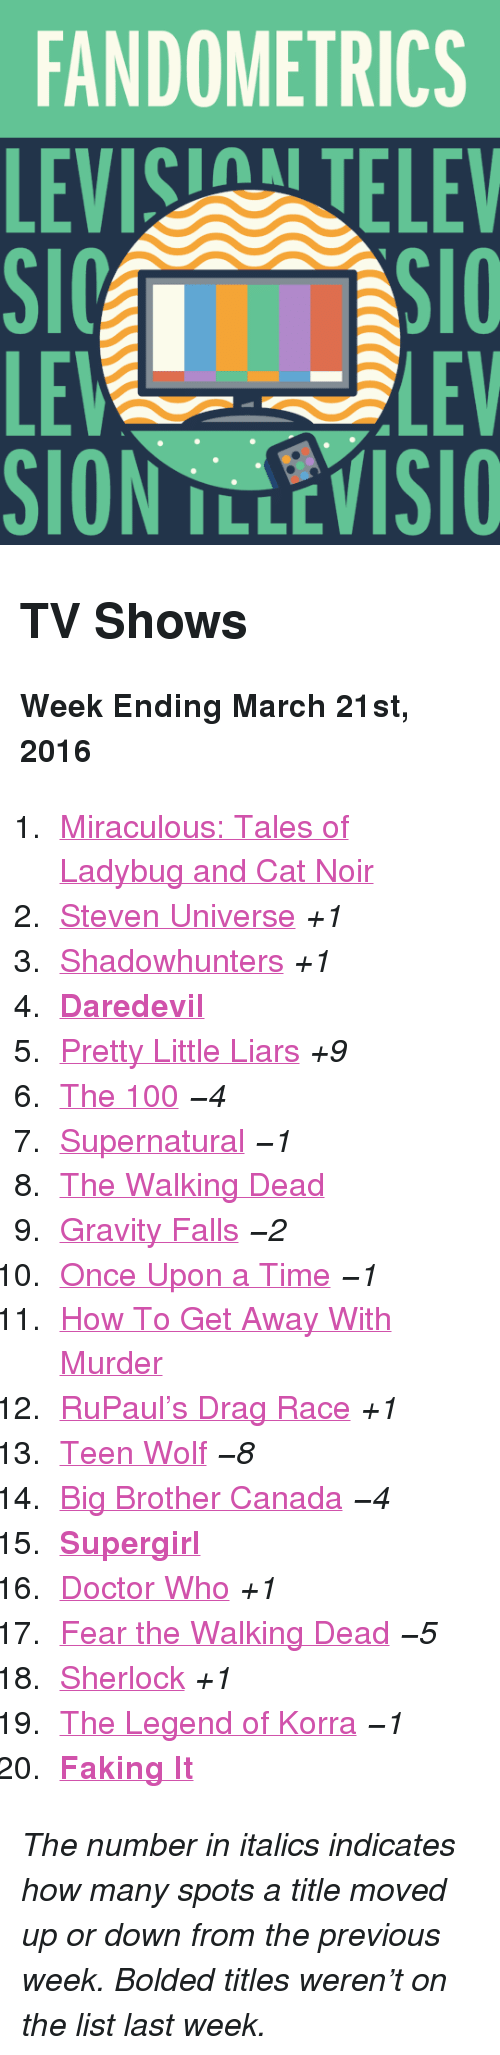 """Fear The Walking Dead: FANDOMETRICS  LEVIS TELEV  LE  SION TLLEVISIO  LEV <h2>TV Shows</h2><p><b>Week Ending March 21st, 2016</b></p><ol><li><a href=""""http://www.tumblr.com/search/miraculous%20ladybug"""">Miraculous: Tales of Ladybug and Cat Noir</a></li>  <li><a href=""""http://www.tumblr.com/search/steven%20universe"""">Steven Universe</a><i>+1</i></li>  <li><a href=""""http://www.tumblr.com/search/shadowhunters"""">Shadowhunters</a><i>+1</i></li>  <li><a href=""""http://www.tumblr.com/search/daredevil""""><b>Daredevil</b></a></li>  <li><a href=""""http://www.tumblr.com/search/pretty%20little%20liars"""">Pretty Little Liars</a><i>+9</i></li>  <li><a href=""""http://www.tumblr.com/search/the%20100"""">The 100</a><i>−4</i></li>  <li><a href=""""http://www.tumblr.com/search/supernatural"""">Supernatural</a><i>−1</i></li>  <li><a href=""""http://www.tumblr.com/search/the%20walking%20dead"""">The Walking Dead</a></li>  <li><a href=""""http://www.tumblr.com/search/gravity%20falls"""">Gravity Falls</a><i>−2</i></li>  <li><a href=""""http://www.tumblr.com/search/ouat"""">Once Upon a Time</a><i>−1</i></li>  <li><a href=""""http://www.tumblr.com/search/how%20to%20get%20away%20with%20murder"""">How To Get Away With Murder</a></li>  <li><a href=""""http://www.tumblr.com/search/rupaul's%20drag%20race"""">RuPaul&rsquo;s Drag Race</a><i>+1</i></li>  <li><a href=""""http://www.tumblr.com/search/teen%20wolf"""">Teen Wolf</a><i>−8</i></li>  <li><a href=""""http://www.tumblr.com/search/bbcan4"""">Big Brother Canada</a><i>−4</i></li>  <li><a href=""""http://www.tumblr.com/search/supergirl""""><b>Supergirl</b></a></li>  <li><a href=""""http://www.tumblr.com/search/doctor%20who"""">Doctor Who</a><i>+1</i></li>  <li><a href=""""http://www.tumblr.com/search/fear%20the%20walking%20dead"""">Fear the Walking Dead</a><i>−5</i></li>  <li><a href=""""http://www.tumblr.com/search/sherlock"""">Sherlock</a><i>+1</i></li>  <li><a href=""""http://www.tumblr.com/search/legend%20of%20korra"""">The Legend of Korra</a><i>−1</i></li>  <li><a href=""""http://www.tumblr.com/search/faking%20it""""><b>Faking It</b></a></li"""